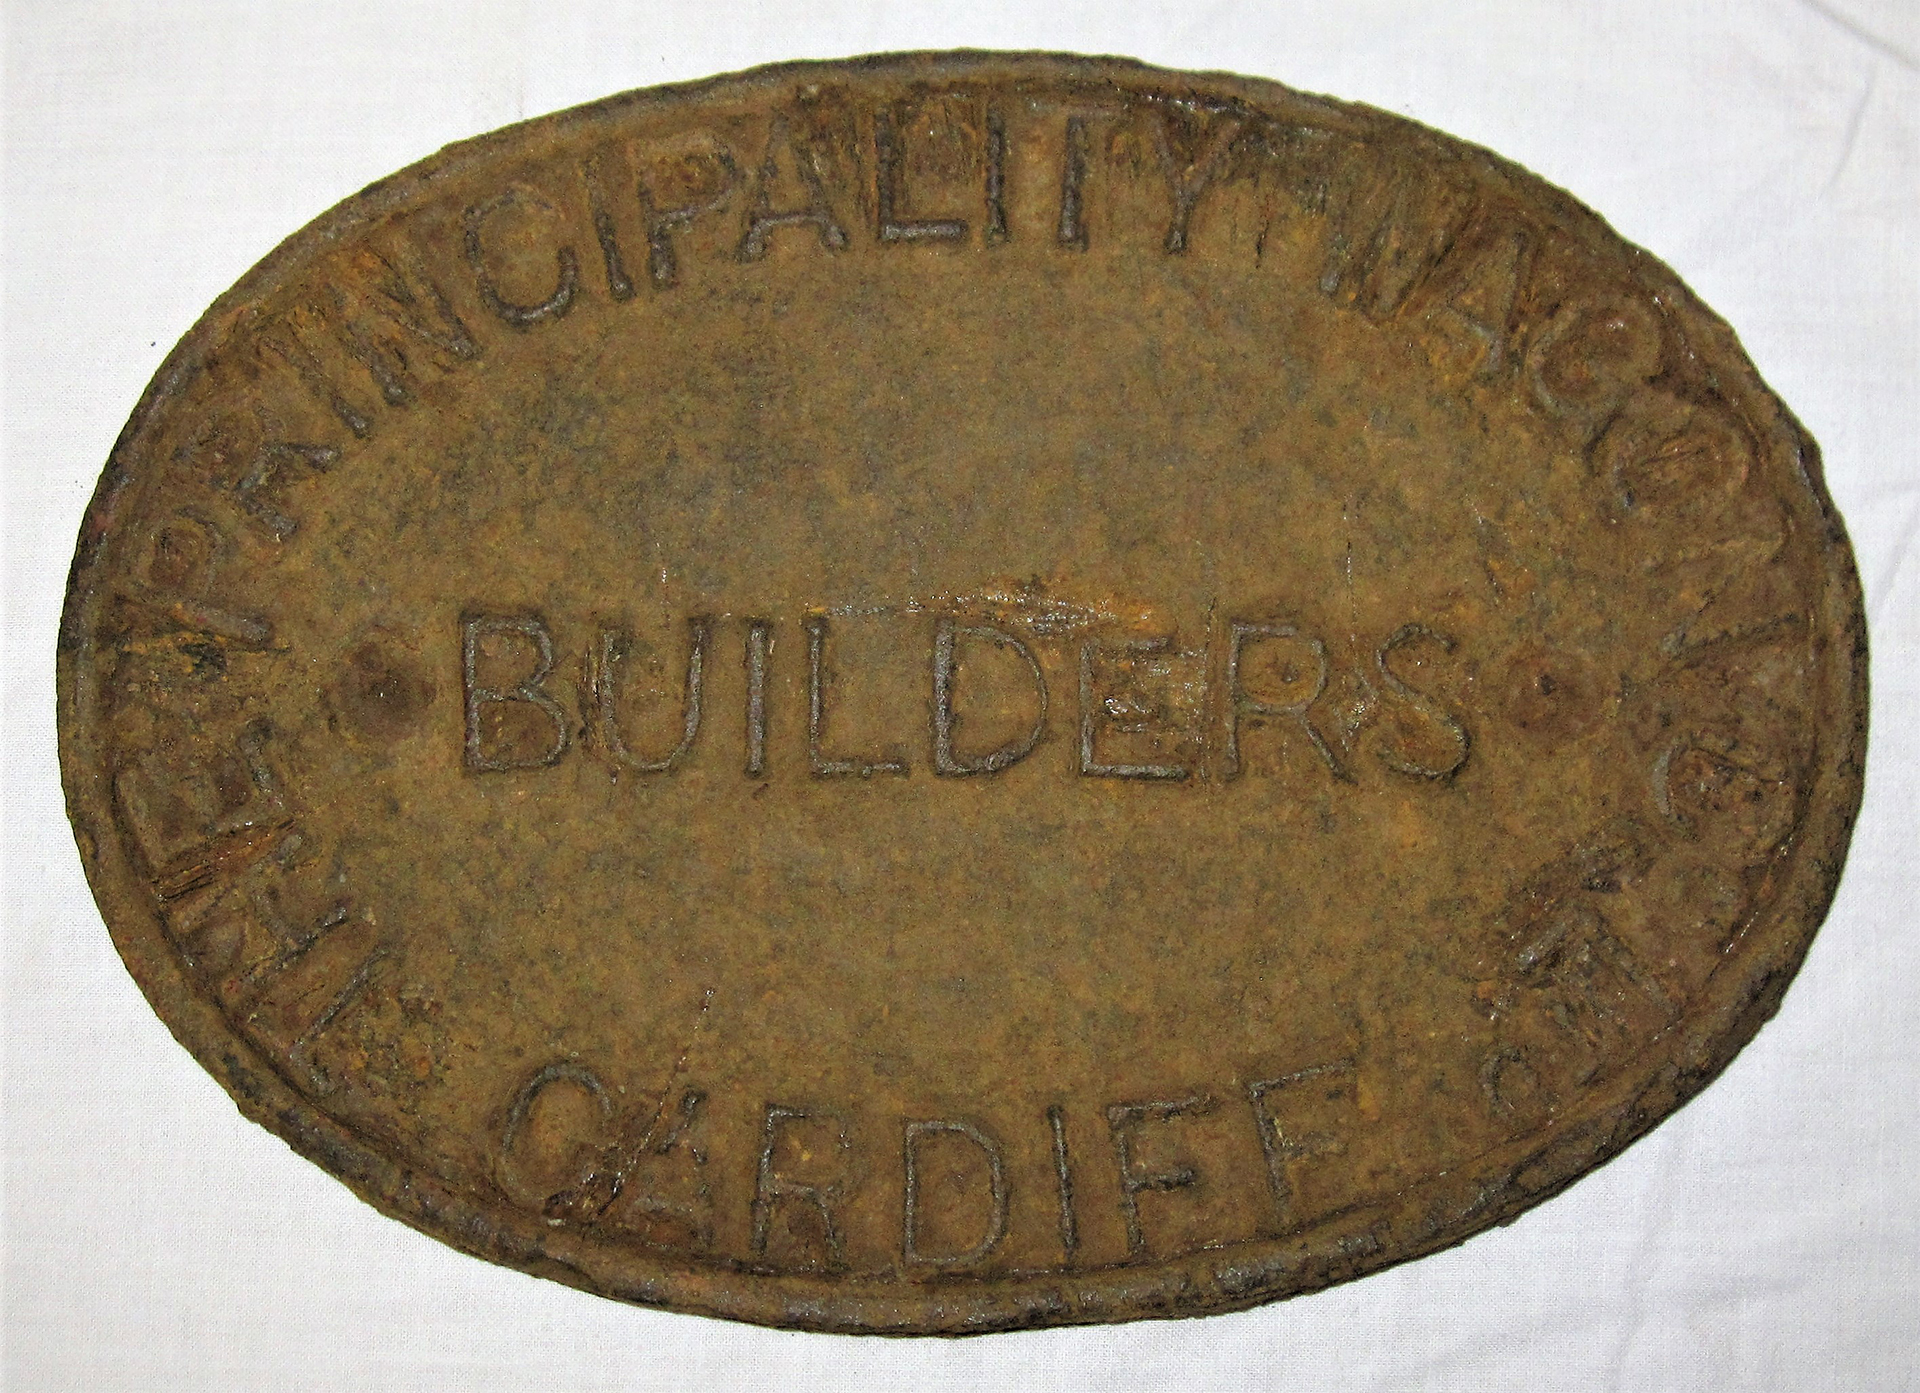 Cast Iron Wagon Plate. THE PRINCIPALITY WAGON Co CARDIFF An early wagon plate from a Welsh Company